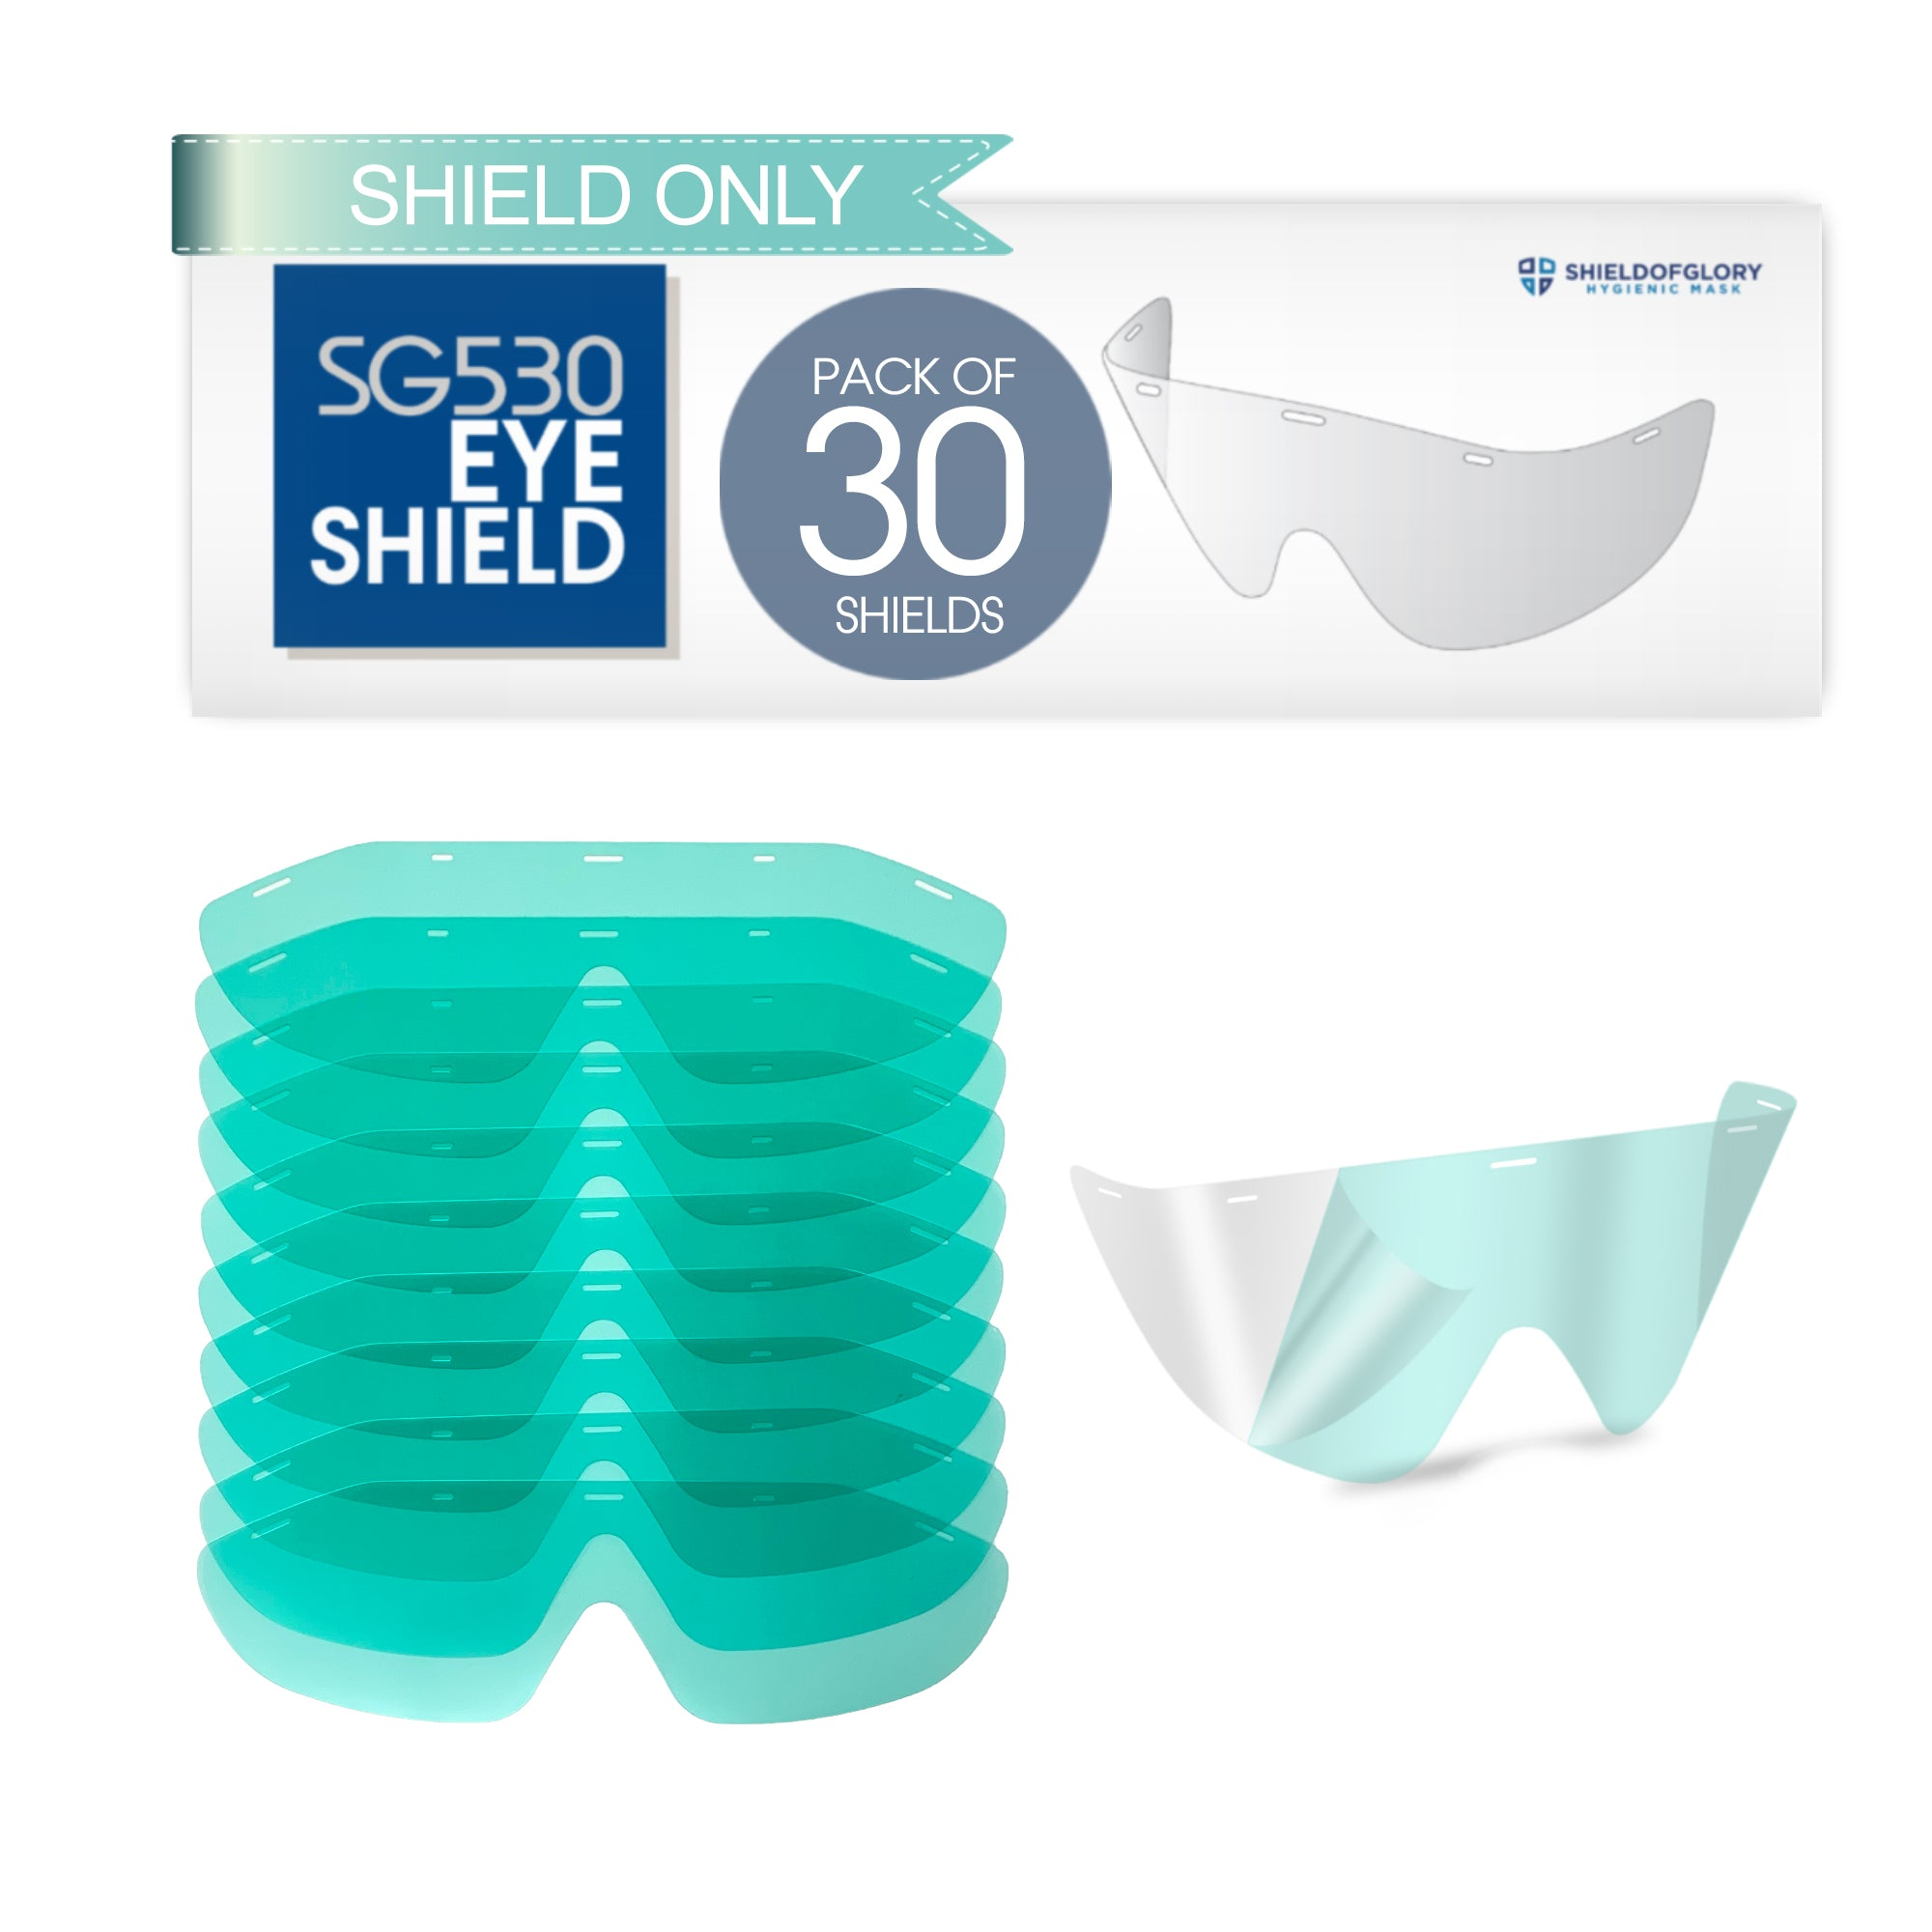 SG530 Eye shield Only- Replacement (30-Pack)